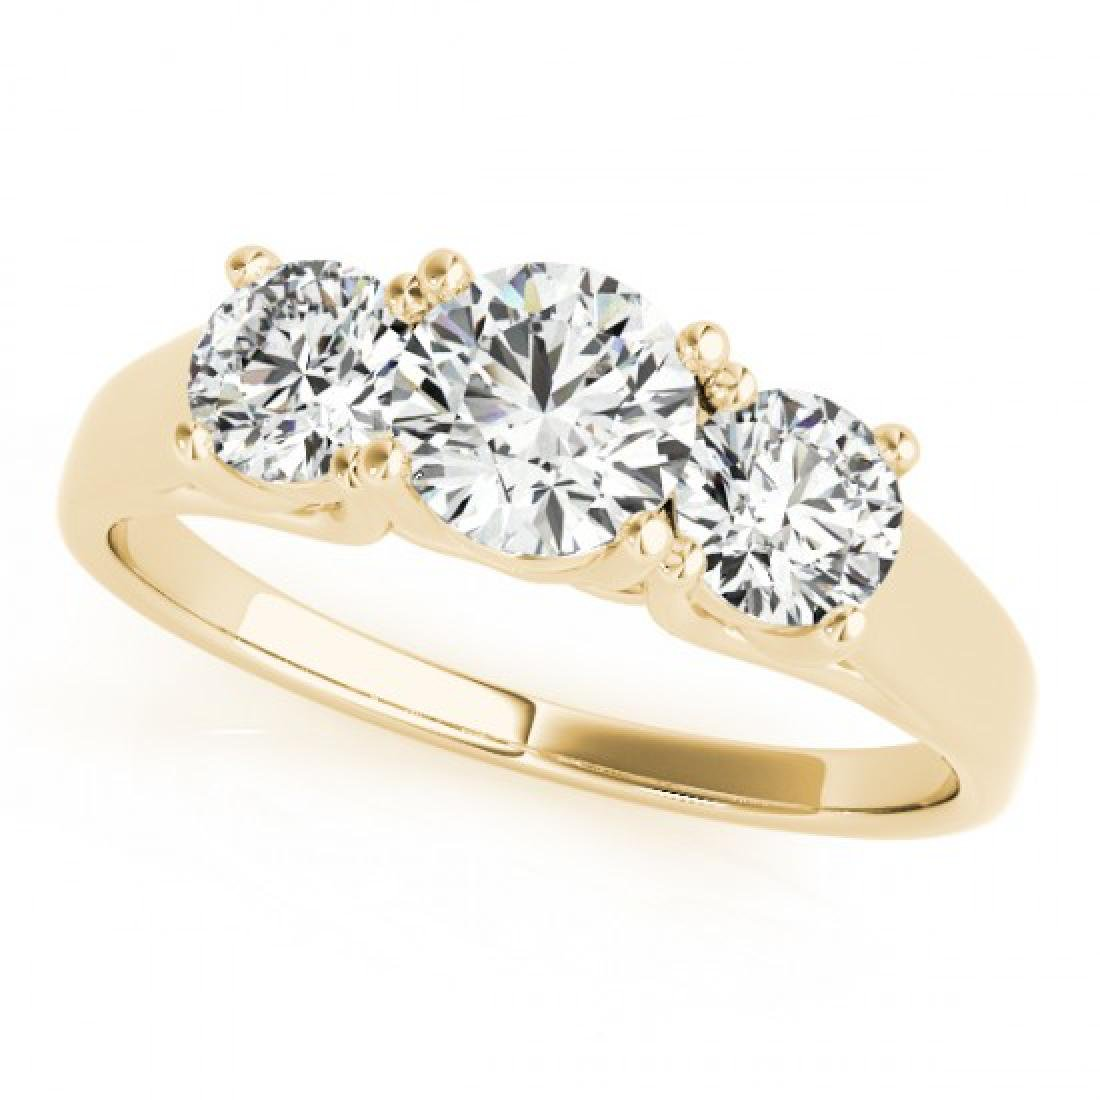 1.3 CTW Certified VS/SI Diamond 3 Stone Ring 14K Yellow